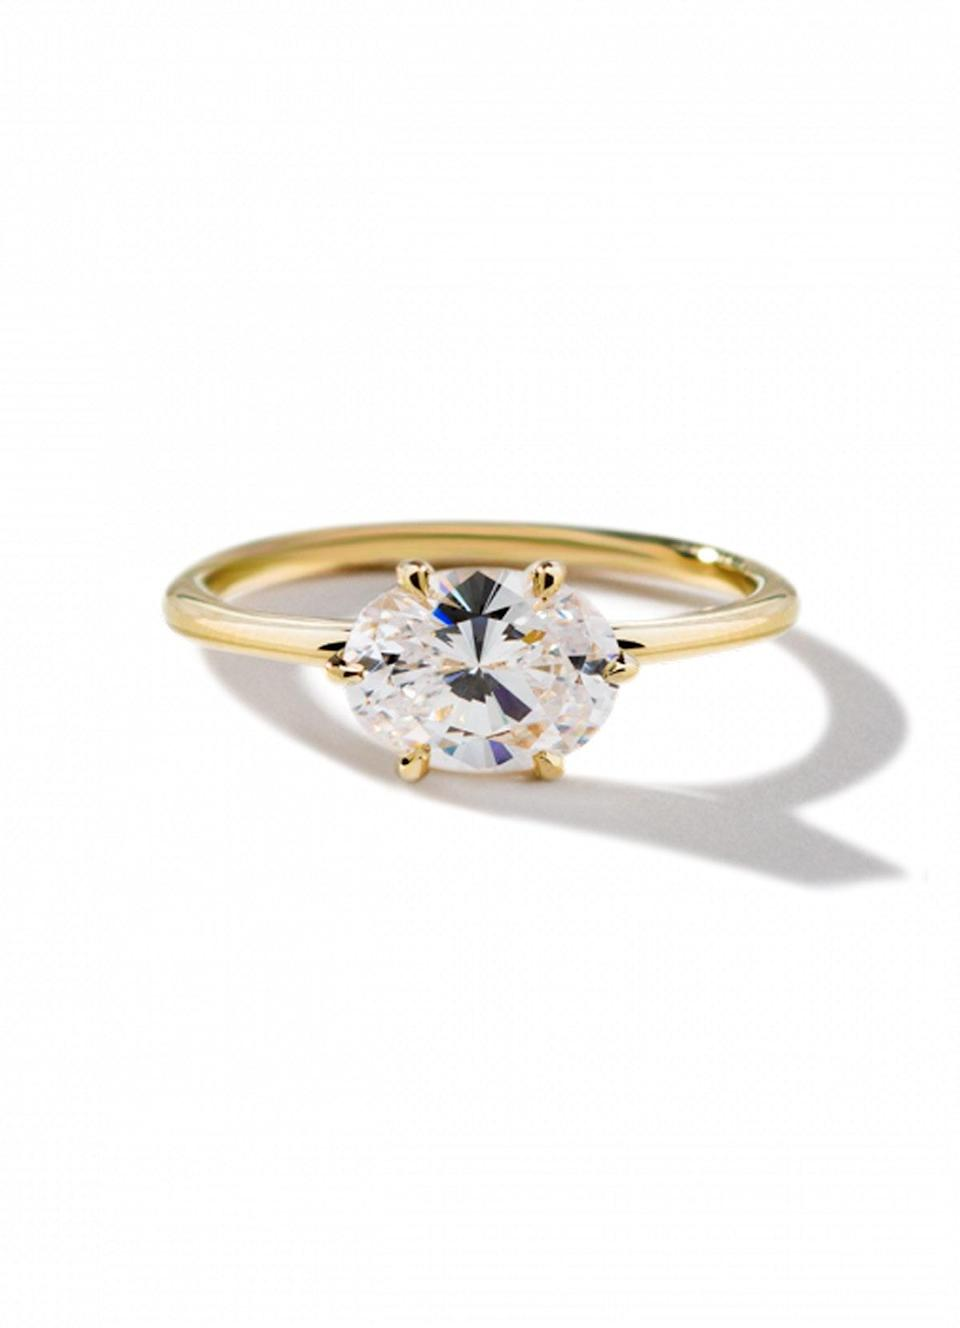 """Prongs are the small pieces of metal that set the stone on an engagement ring. They might be a simple construction element, but they can really transform the look of your ring—and shoppers know it. """"Four-prong solitaires have been around for decades, but now we're seeing a rise in the six-prong trend,"""" says Zimmerman, noting that the latter draw from the iconic Tiffany setting. $3366, ILA. <a href=""""https://ilacollection.com/oona-18k-yellow-gold.html"""" rel=""""nofollow noopener"""" target=""""_blank"""" data-ylk=""""slk:Get it now!"""" class=""""link rapid-noclick-resp"""">Get it now!</a>"""